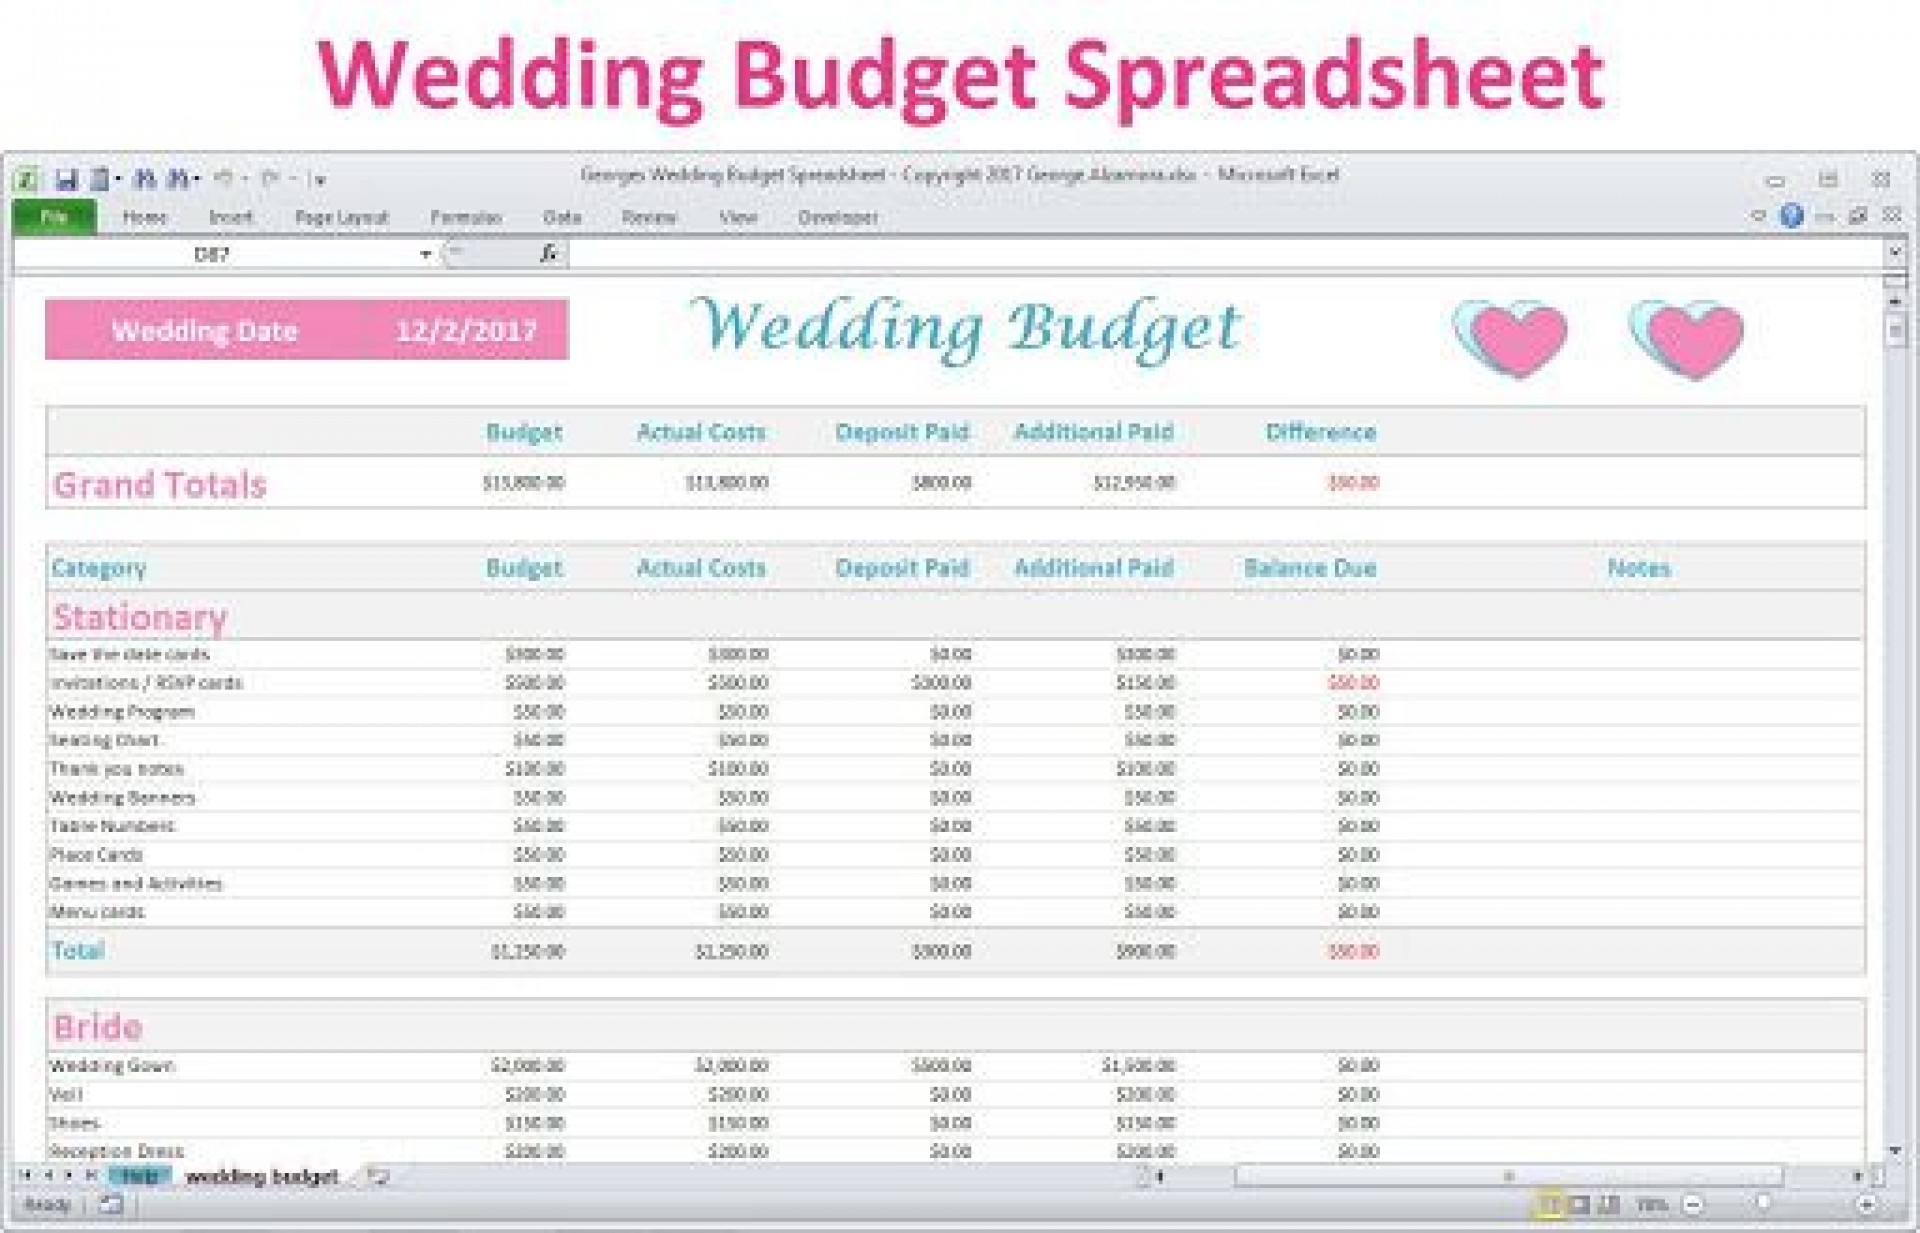 006 Awful Wedding Budget Template Excel High Resolution  South Africa Sample Spreadsheet1920